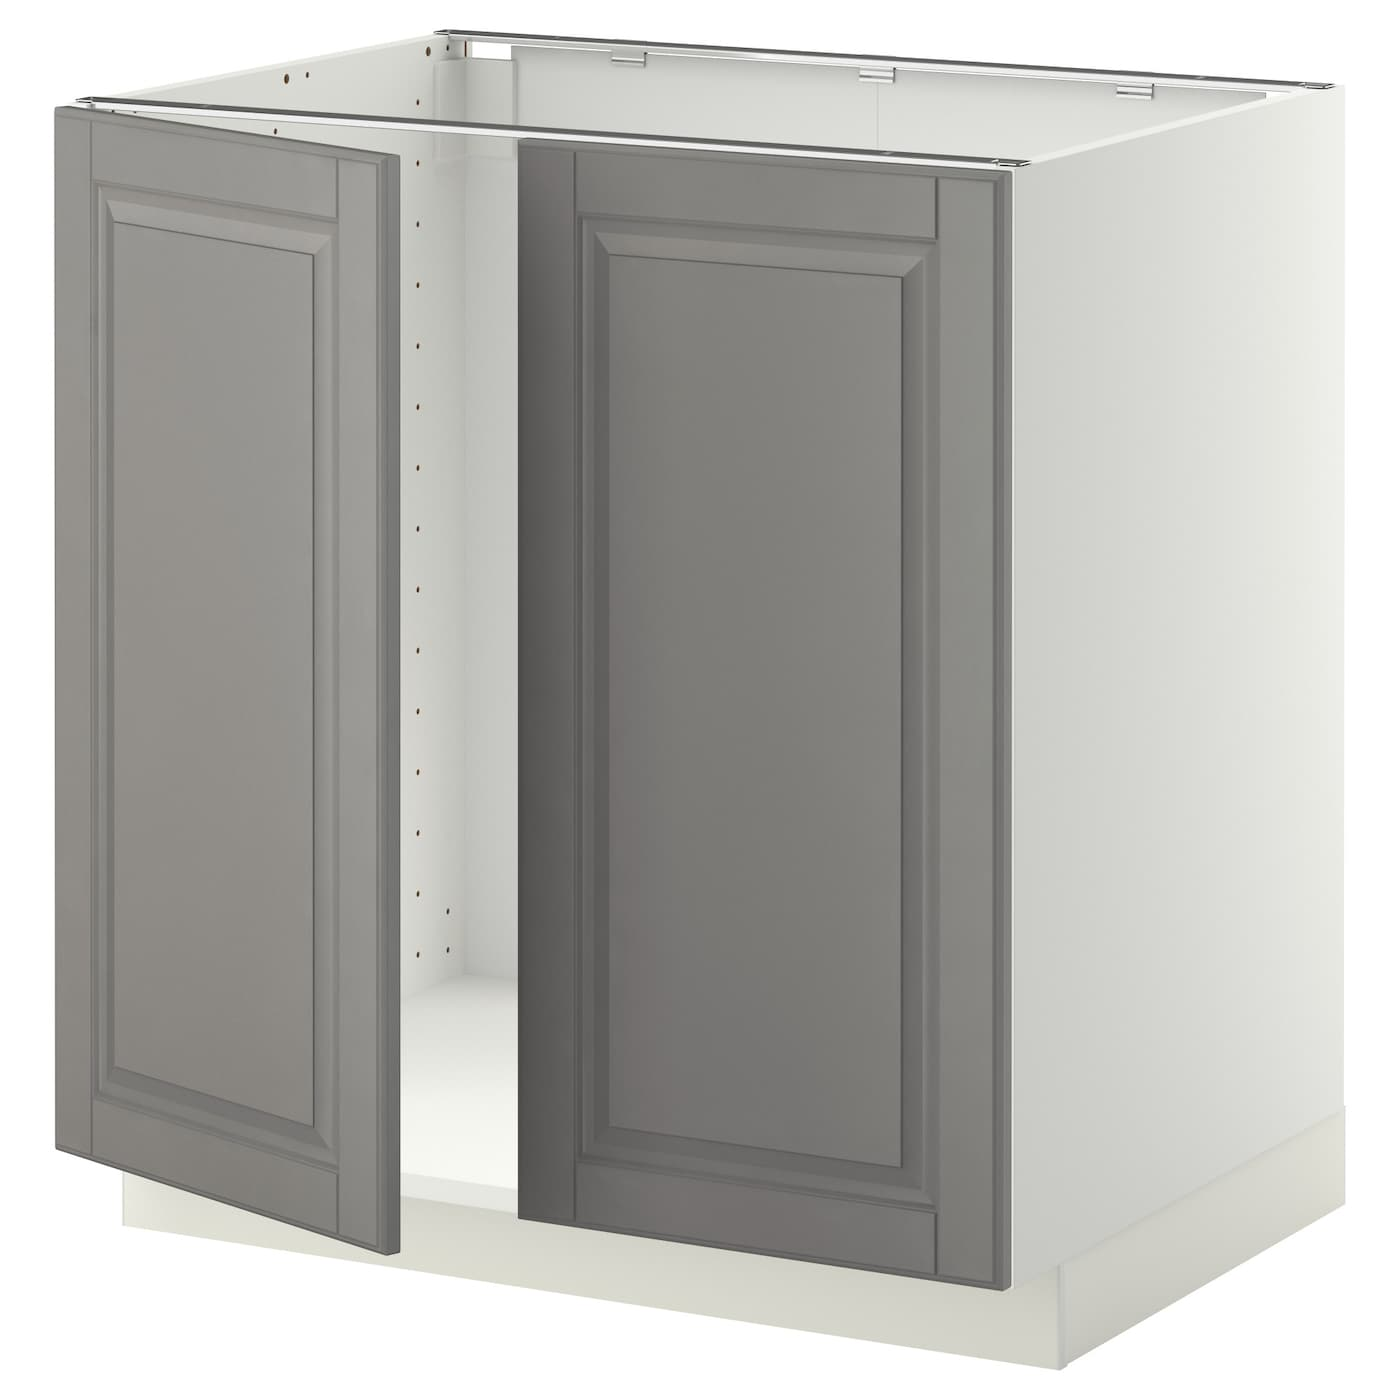 METOD Base Cabinet For Sink + 2 Doors White/bodbyn Grey 80